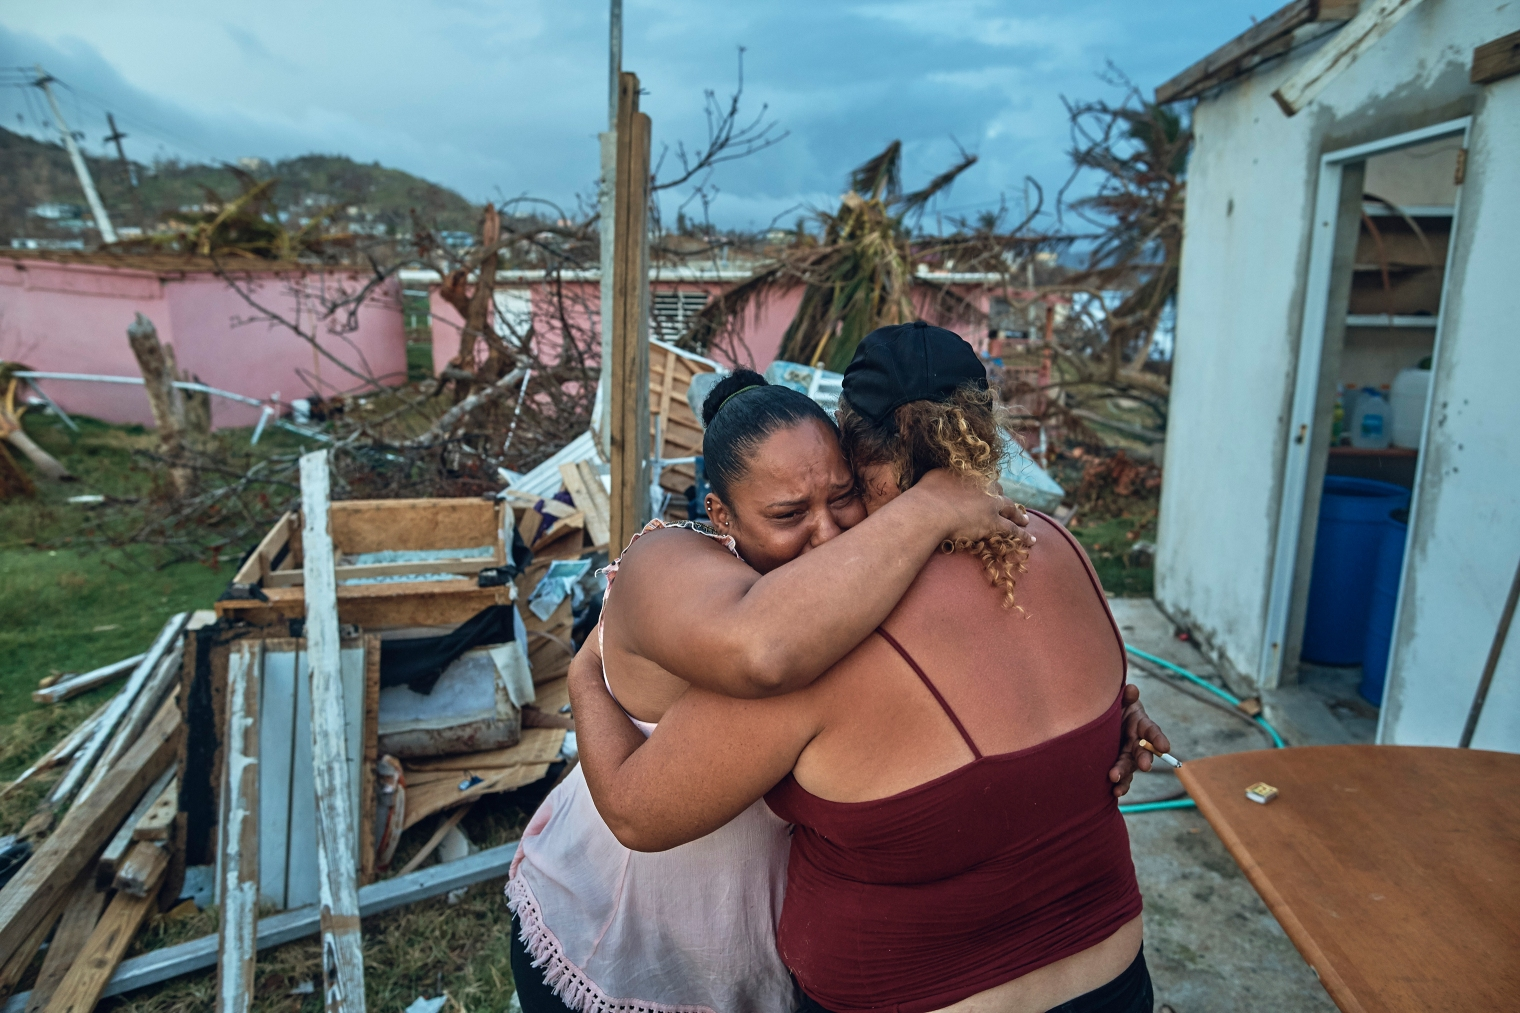 Sheila Sustache, 37, cries and hugs her aunt Yasmin Morales Torres, 41, after seeing the damage to their houses in Yabucoa, Puerto Rico, on Sept. 29, 2017.